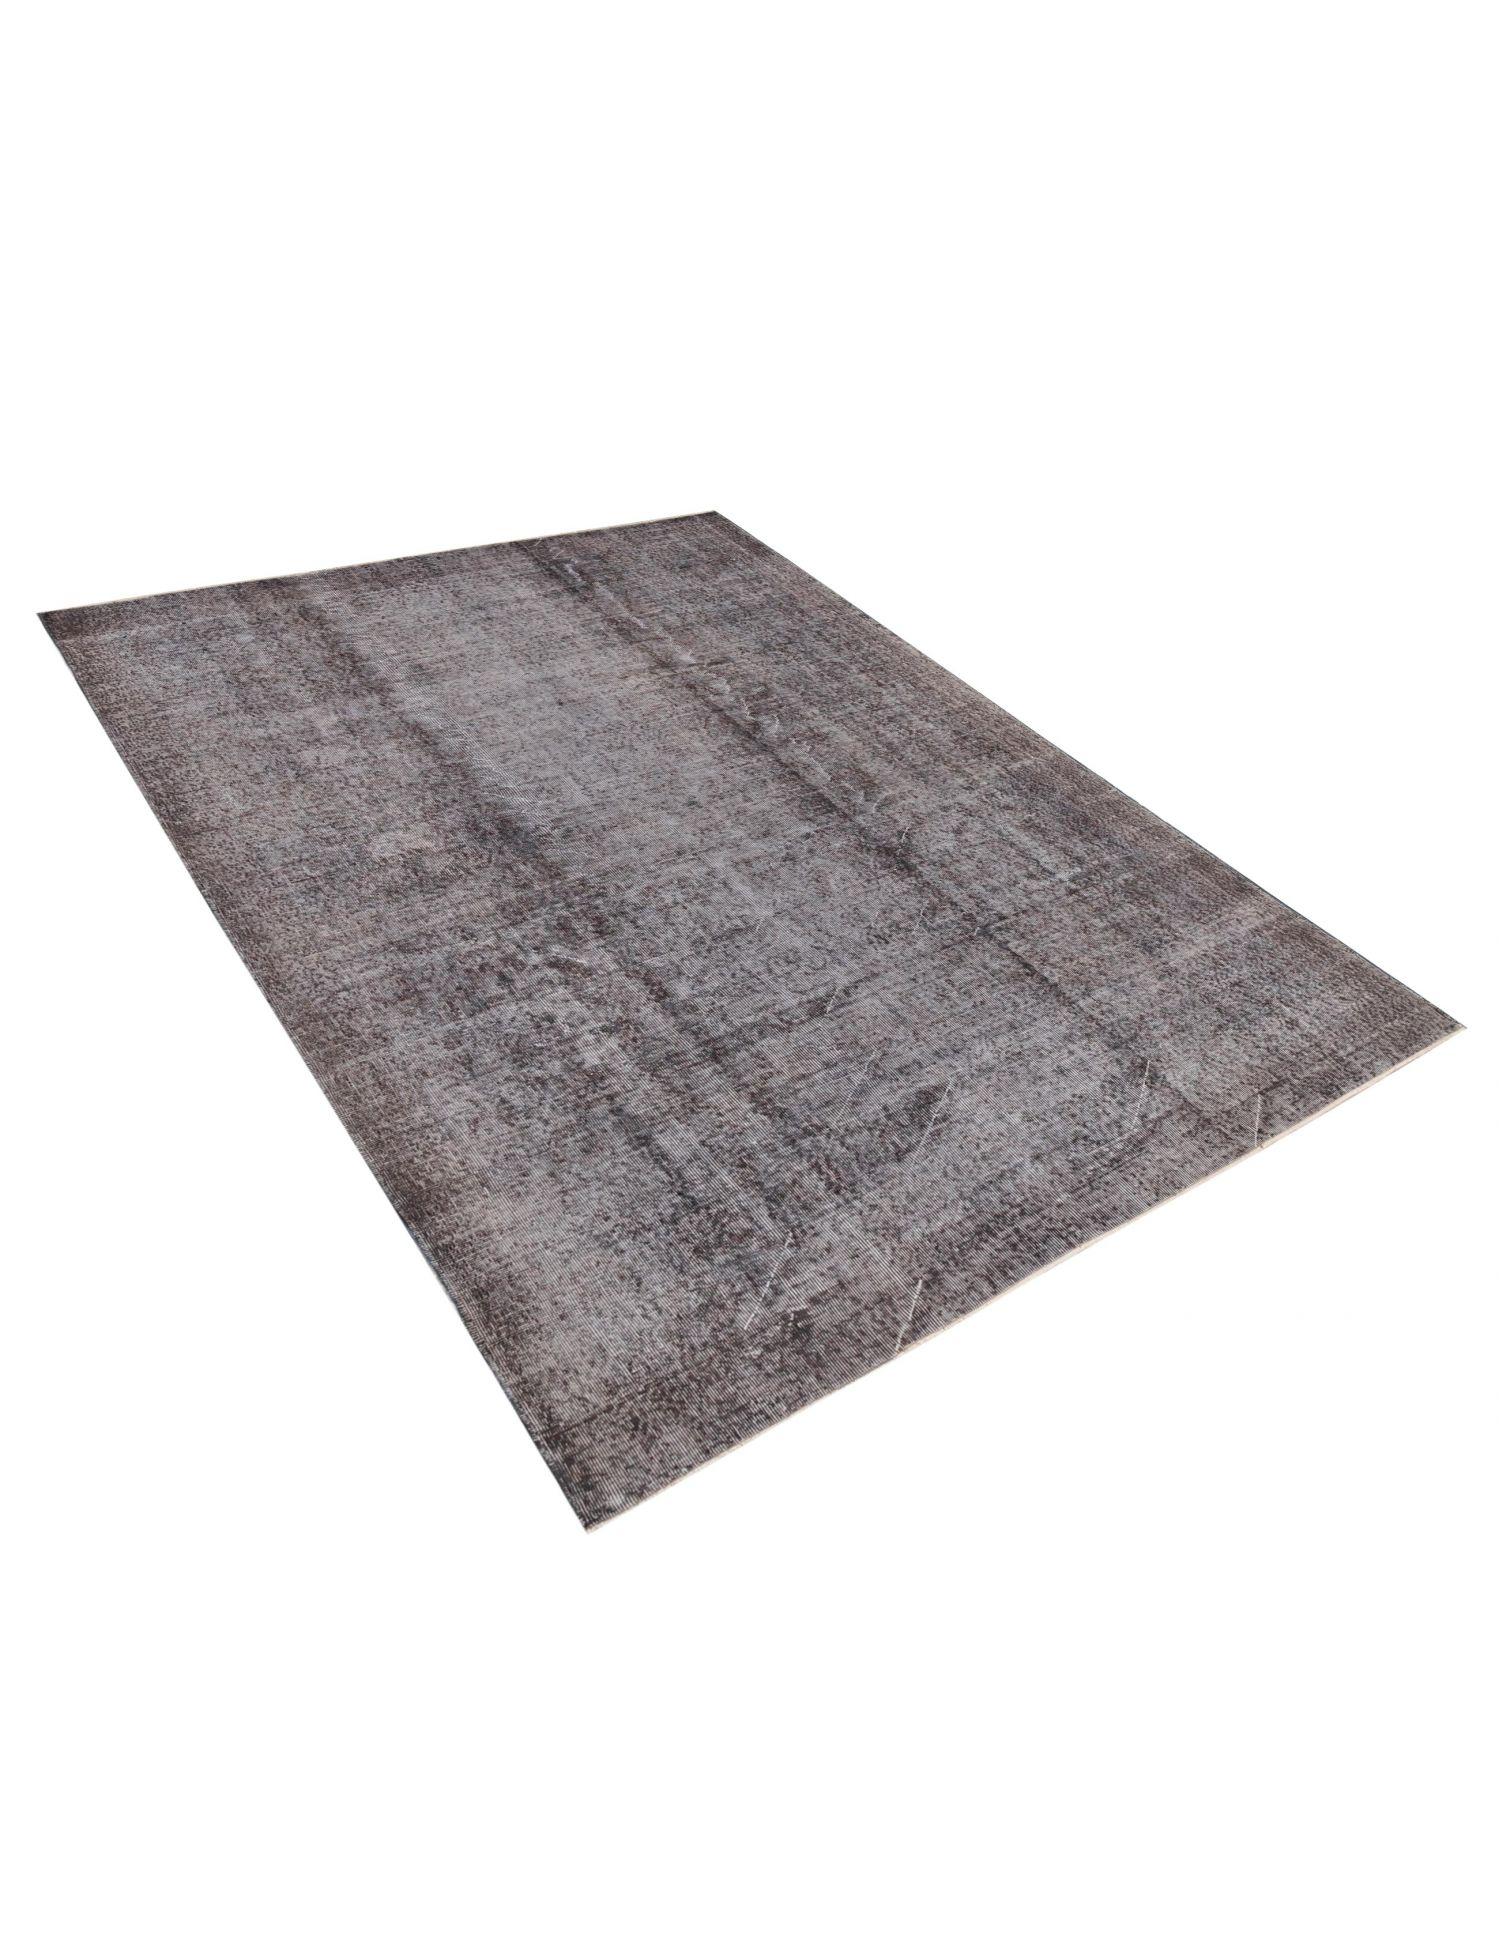 Vintage Carpet  grey <br/>293 x 214 cm